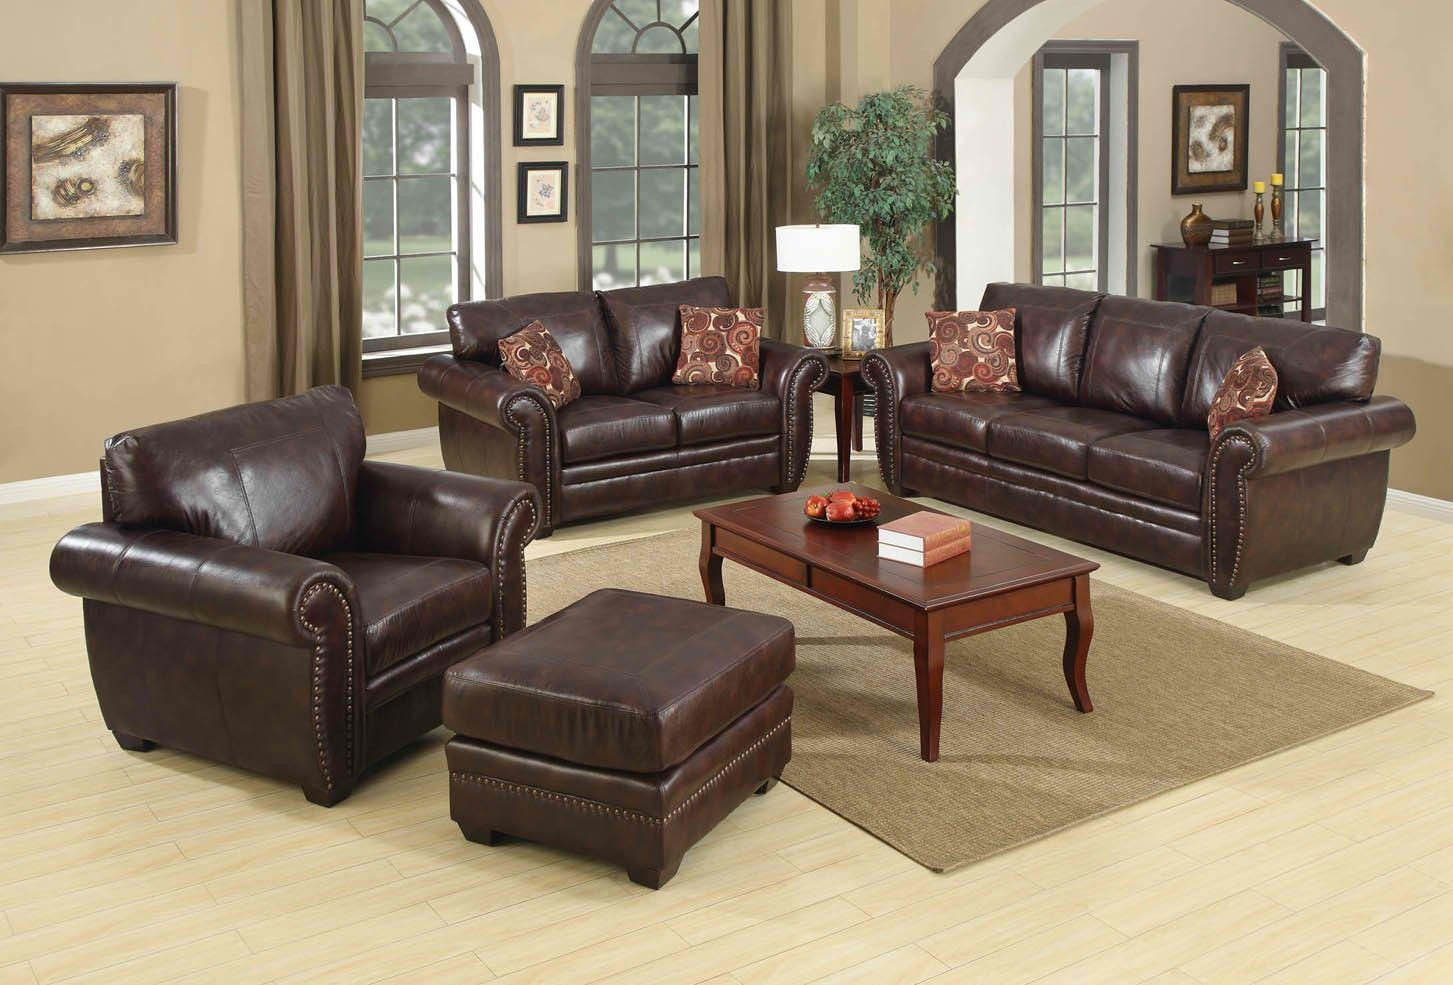 Brown leather living room furniture - Modern Living Room Ideas With Brown Leather Sofa Brown Sofa Design Ideas With Walnutcoffee Table Combines With Grey Wow Picture